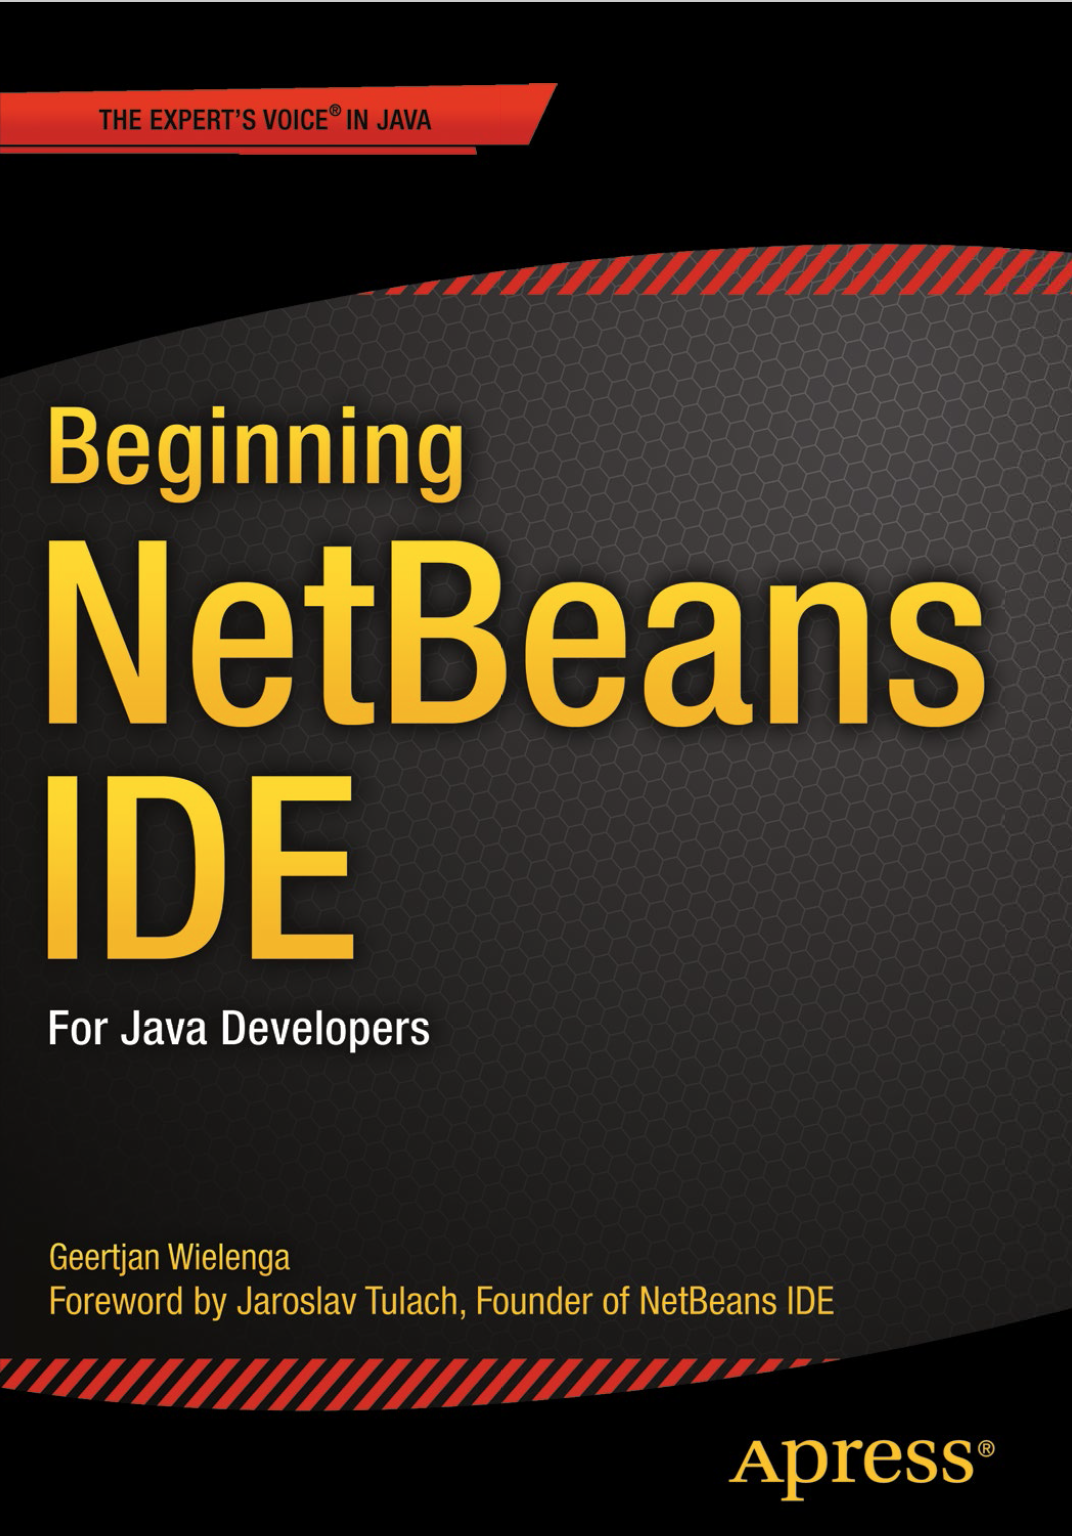 Beginning NetBeans IDE for Java Developers